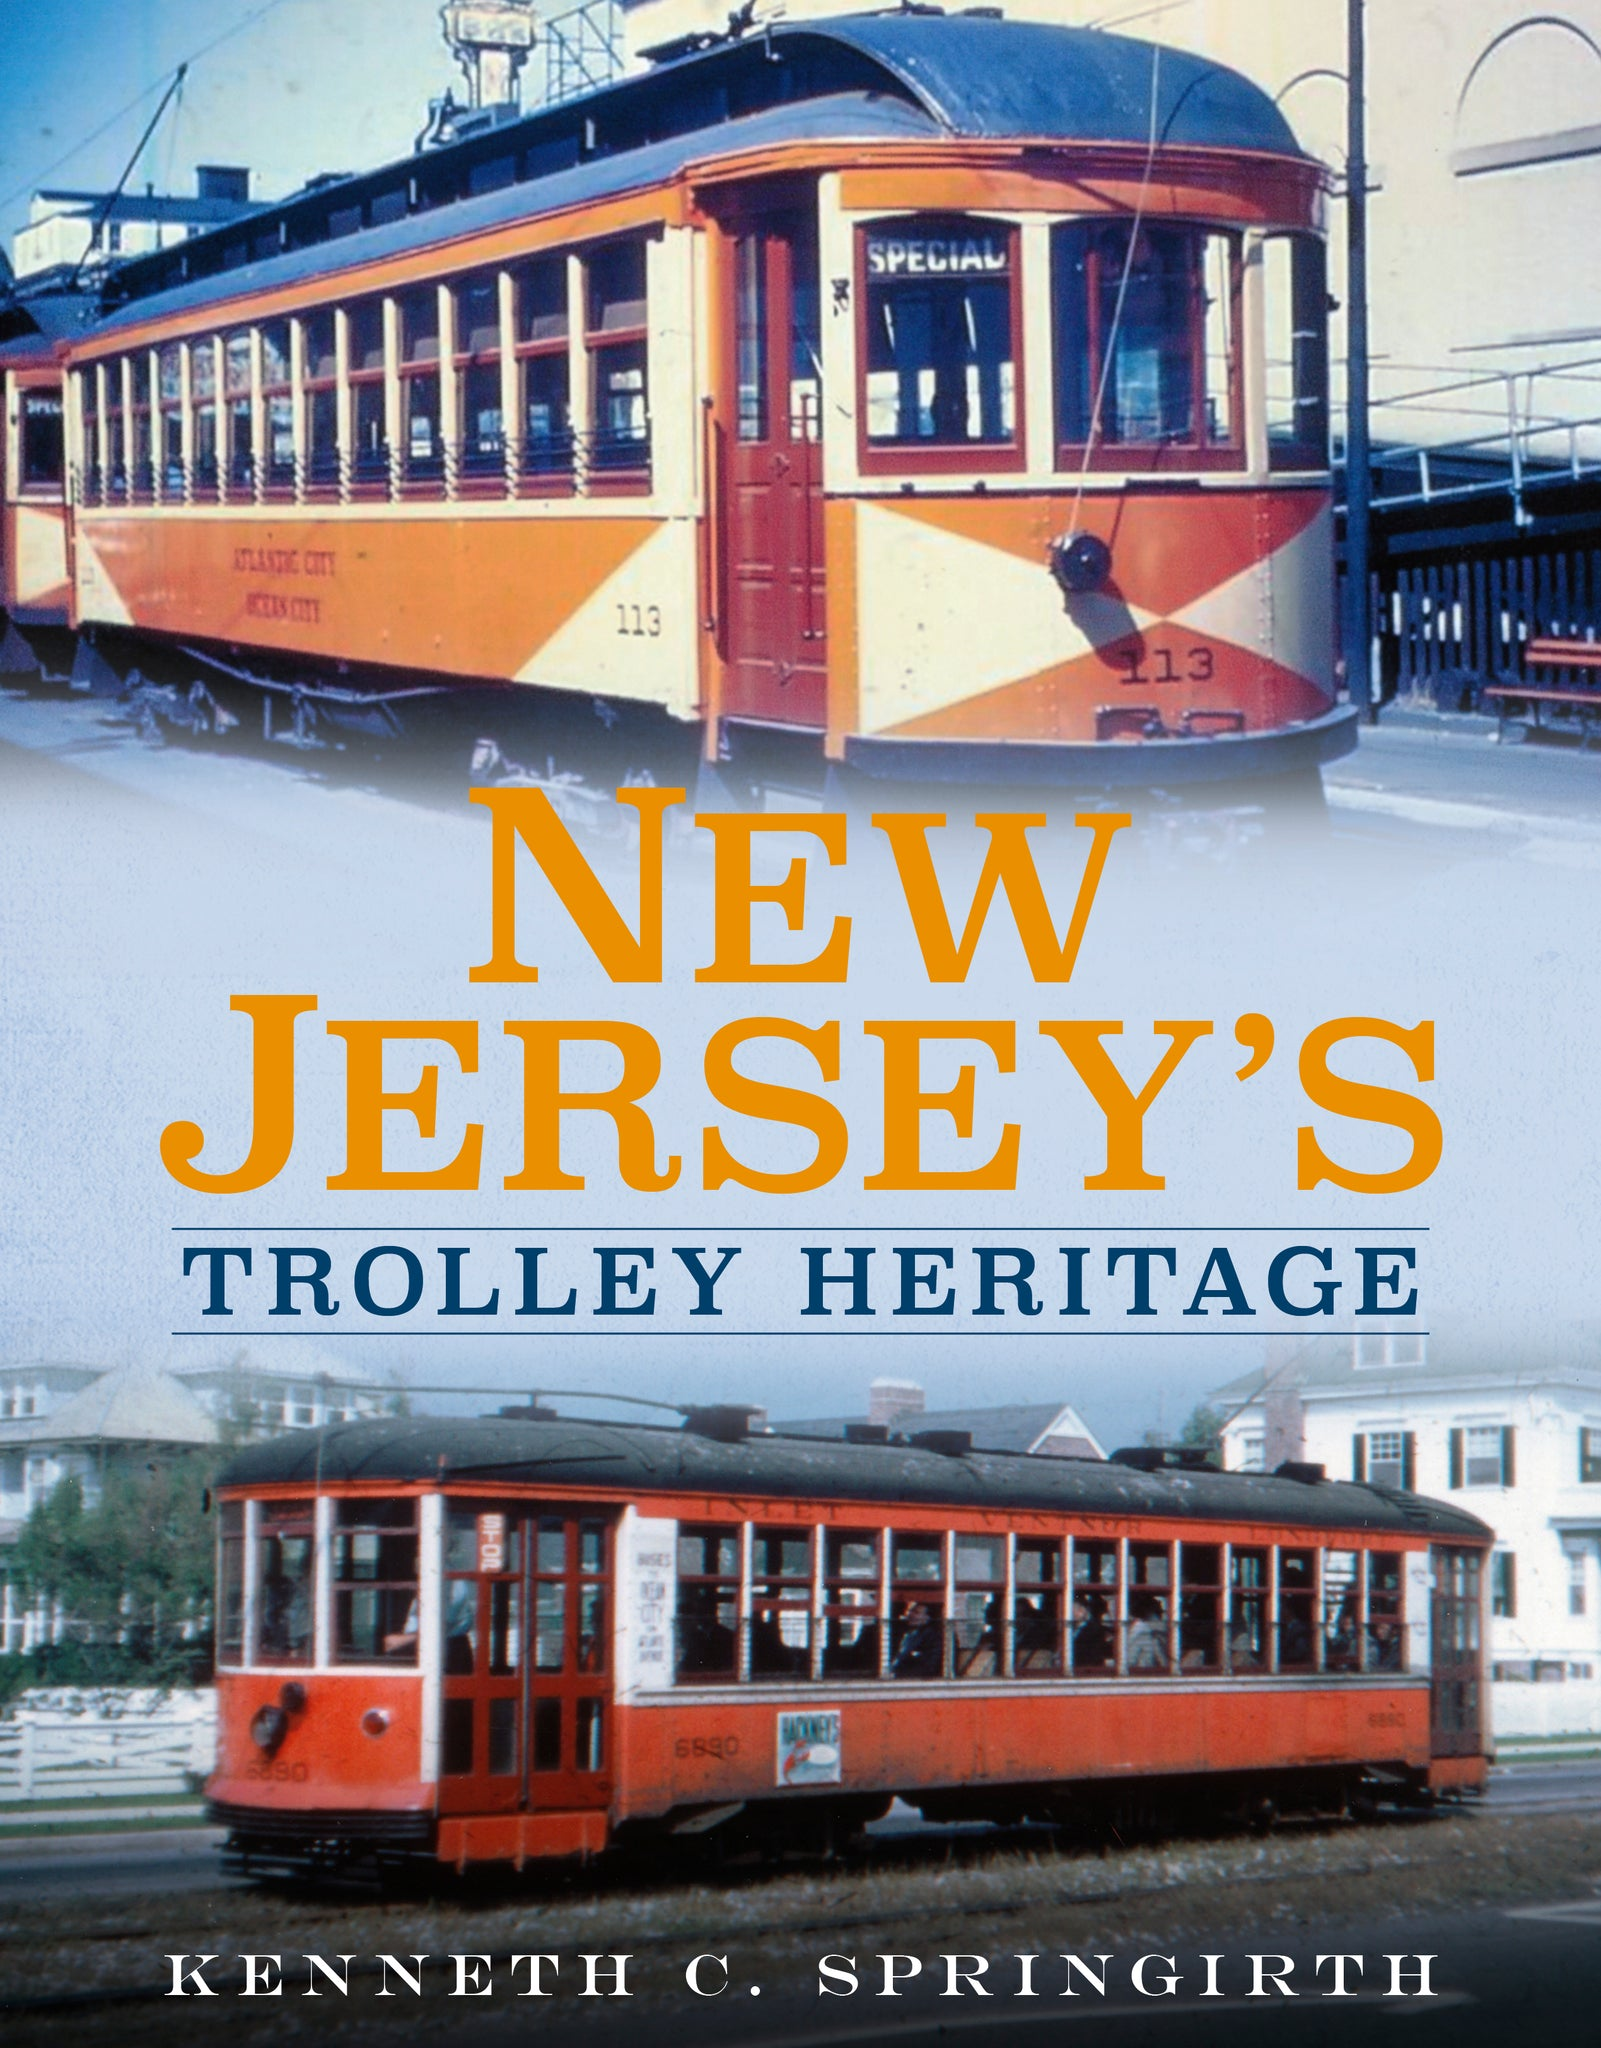 New Jersey's Trolley Heritage - available now from Fonthill Media